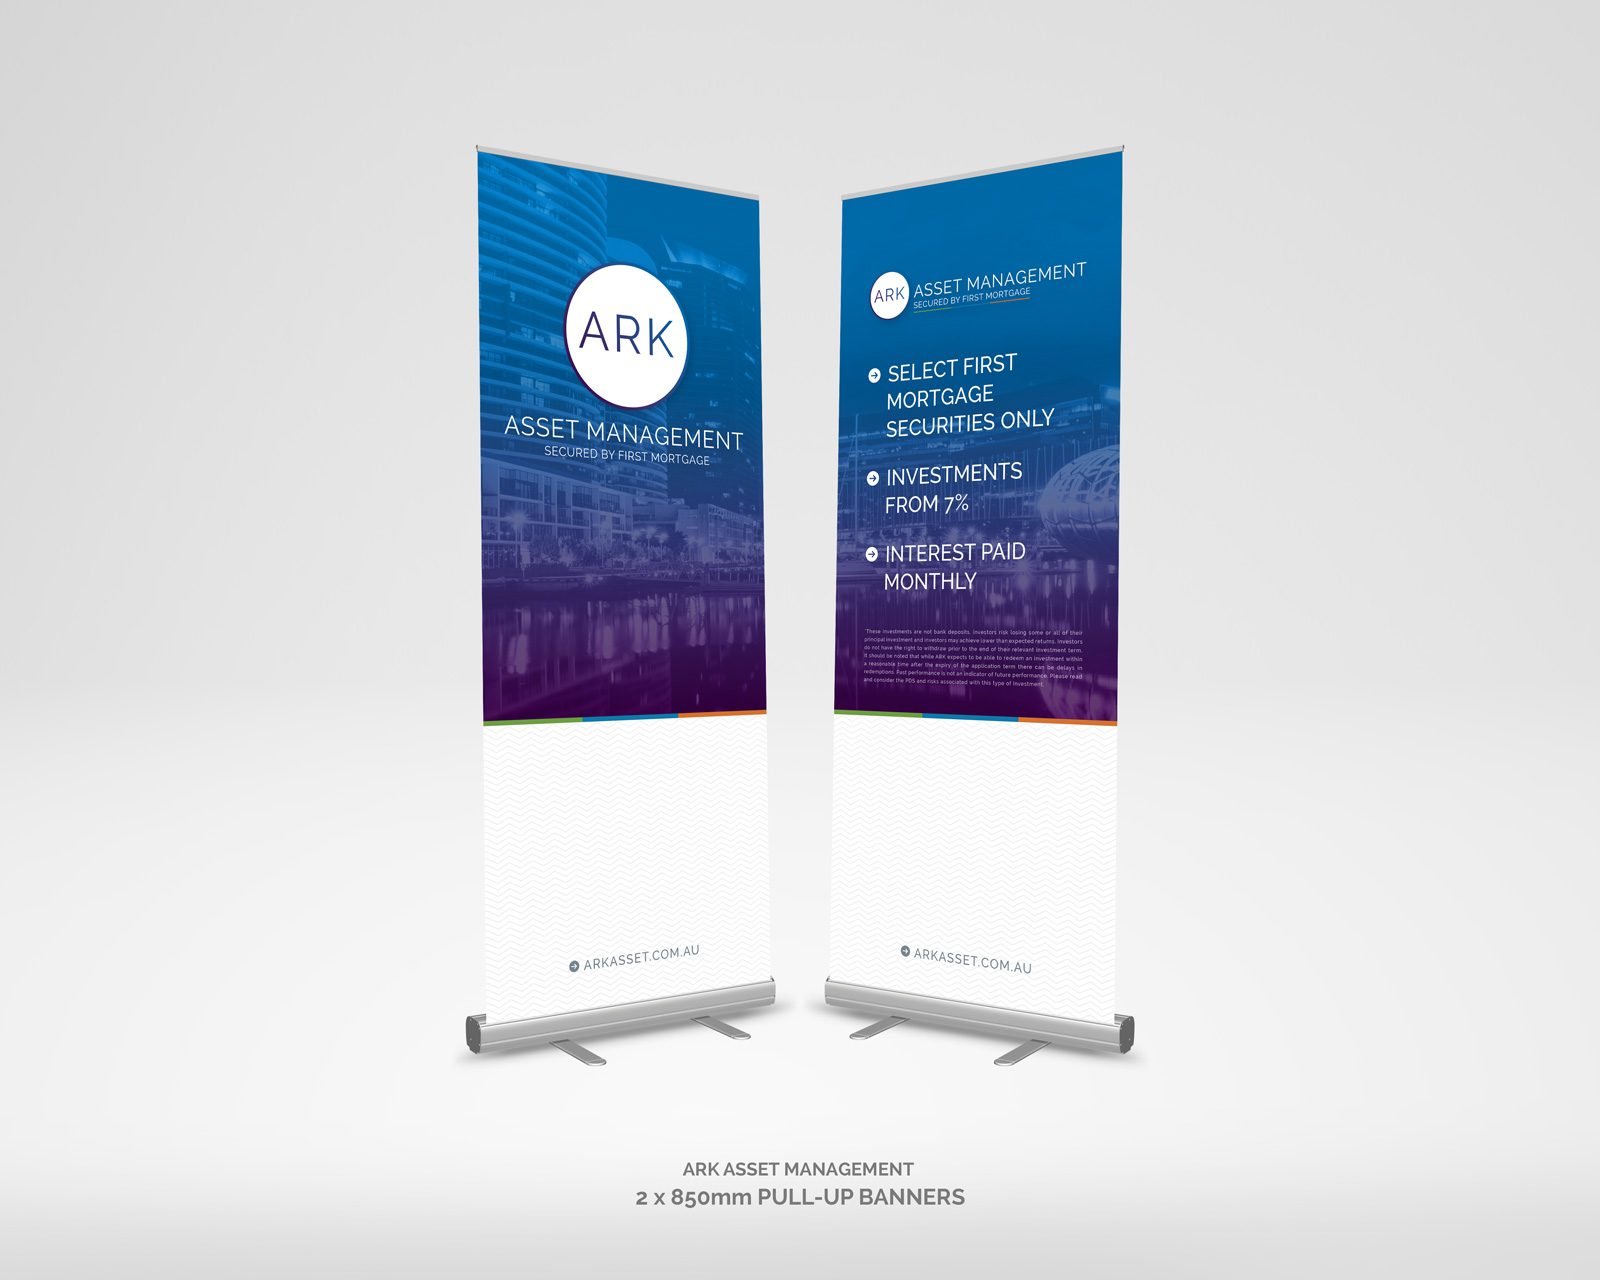 Ark-Asset-Management-2-Banner-Set-MOCKUP.jpg